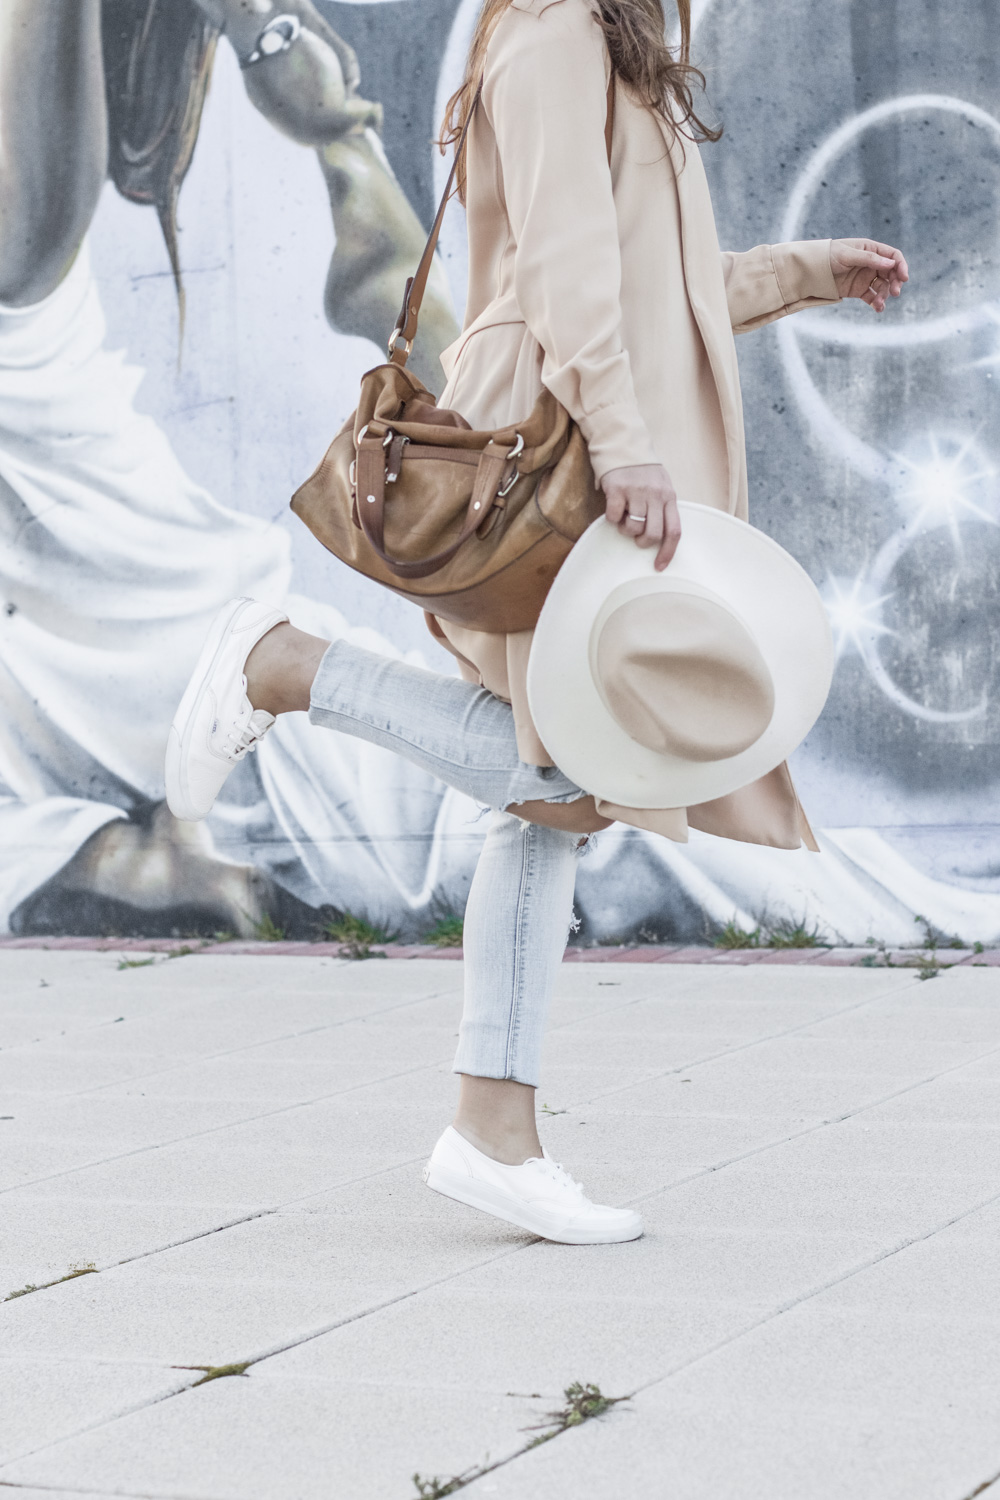 loreto_made_in_style_top_lencero_denim_trench_sombrero_blanco-9